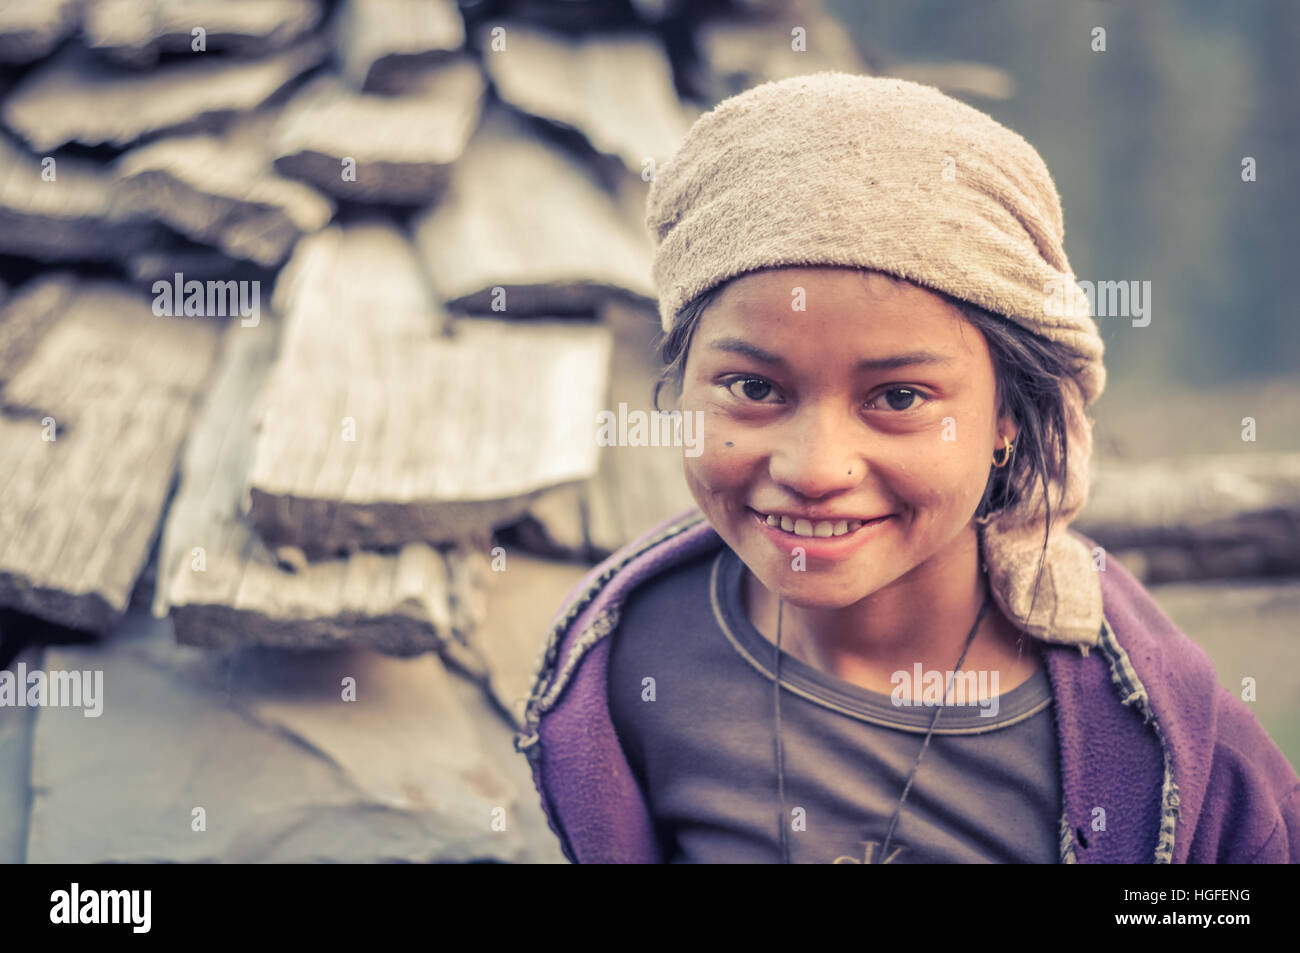 Dolpo, Nepal - circa May 2012: Young girl with beautiful big brown eyes wears headcloth and violet sweatshirt in - Stock Image